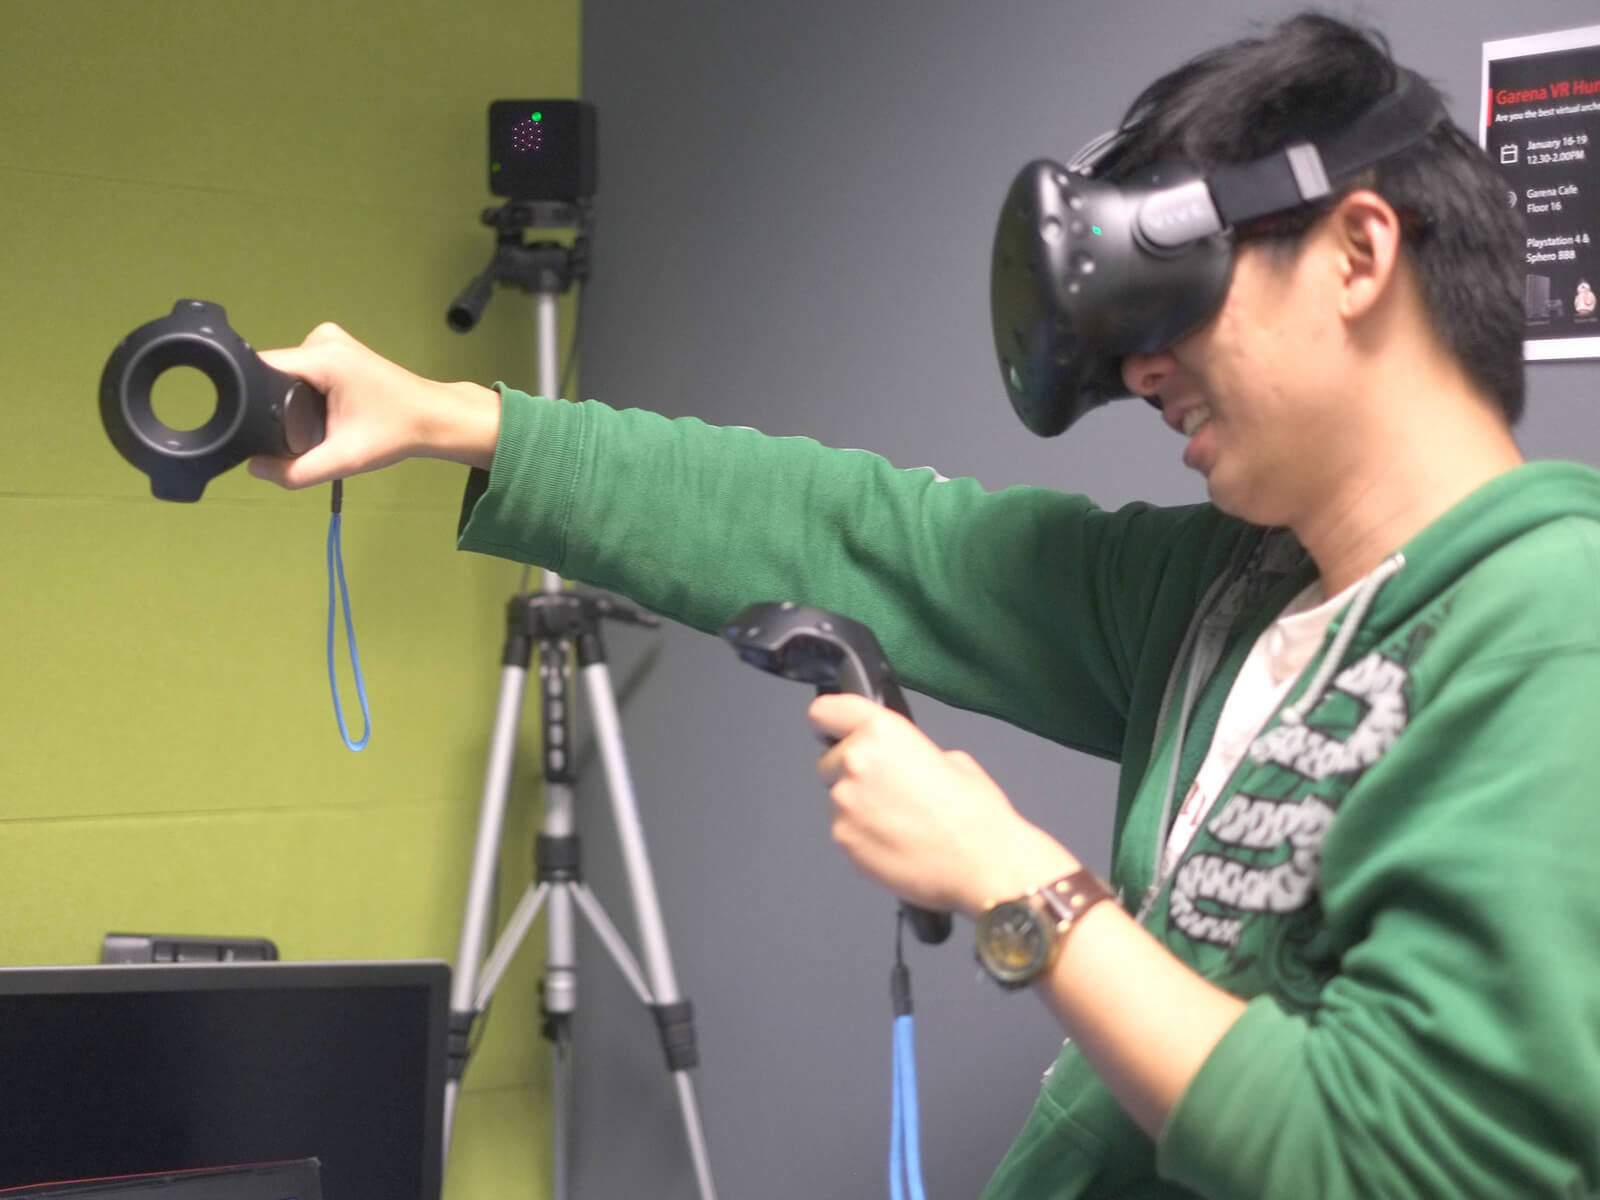 Side view of DigiPen graduate Sim Wei Jin using a VR headset and extending his right arm while using hand-motion controls